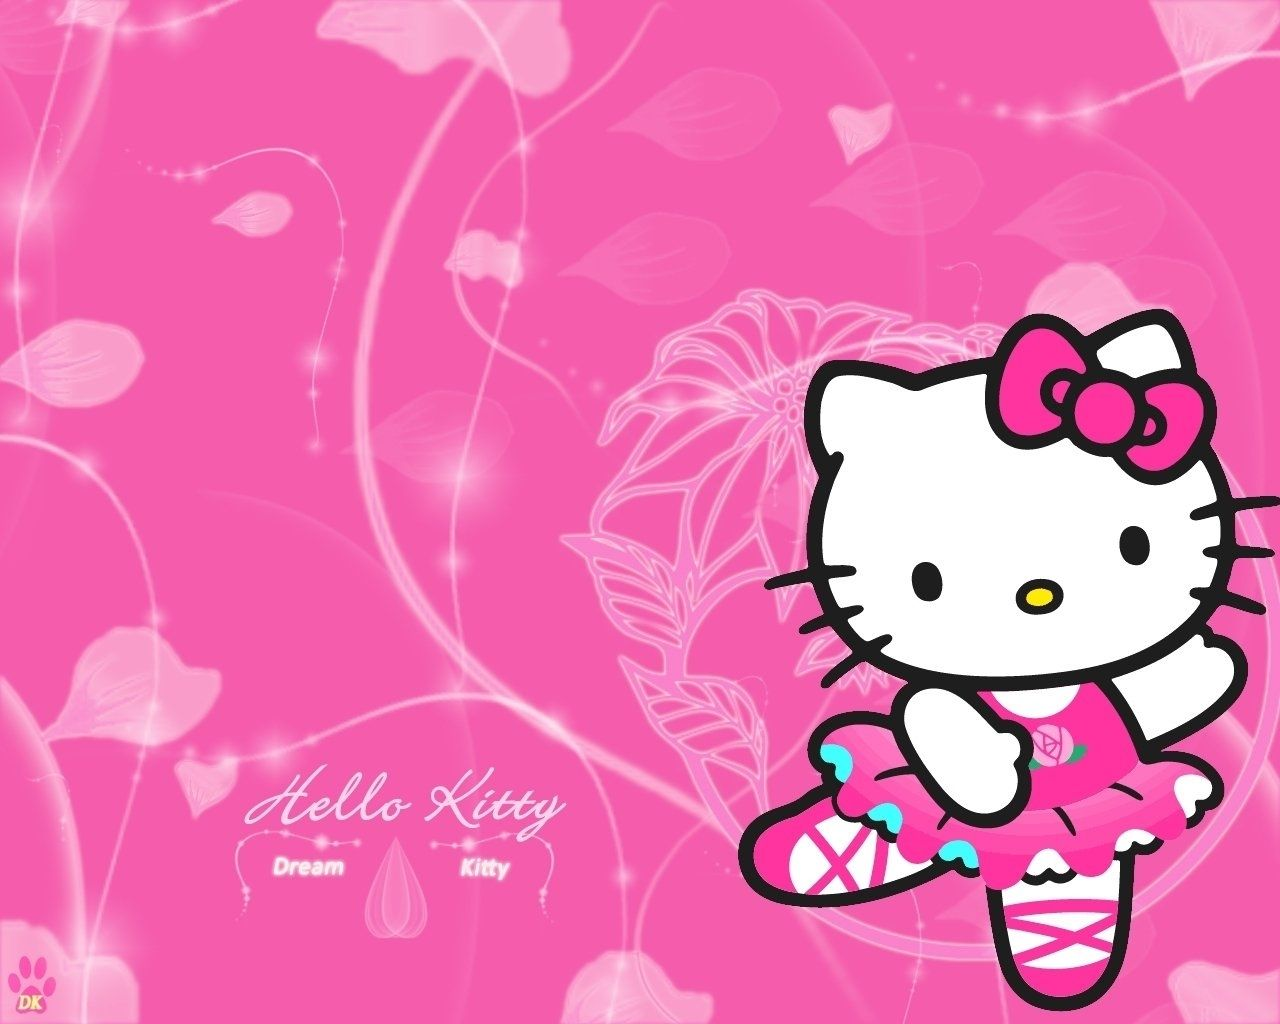 10 Top Pink Hello Kitty Wallpapers Full Hd 1920 1080 For Pc Desktop Hello Kitty Wallpaper Hd Hello Kitty Wallpaper Hello Kitty Images